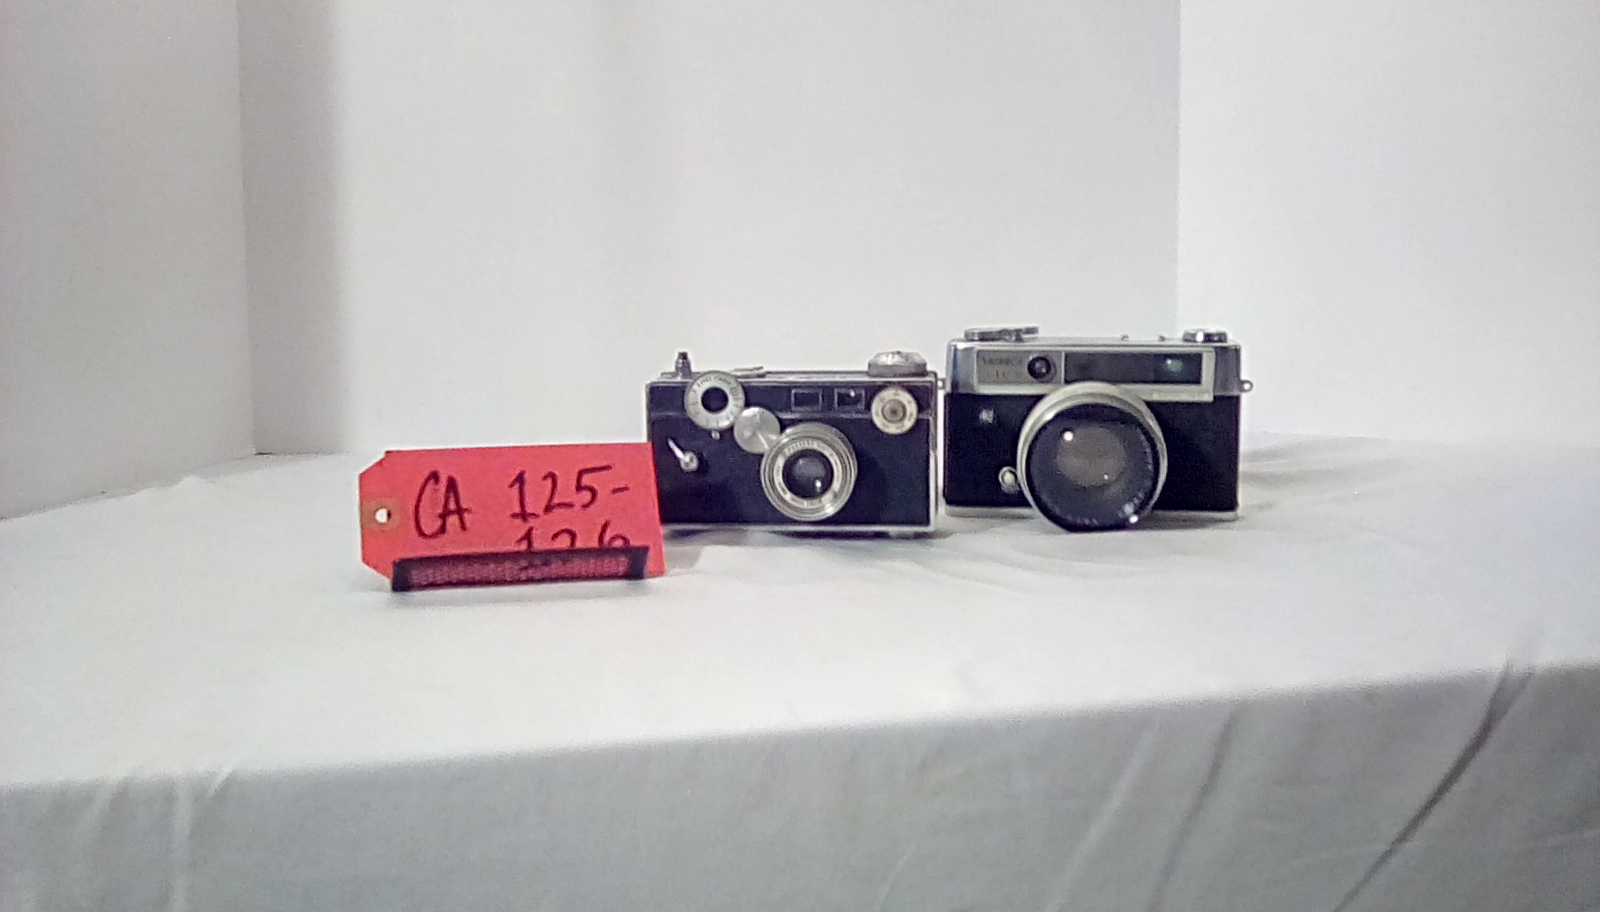 CA125-126, Argus Cintar w/leather fitted case, Yashica IC w/leather fitted case & flash